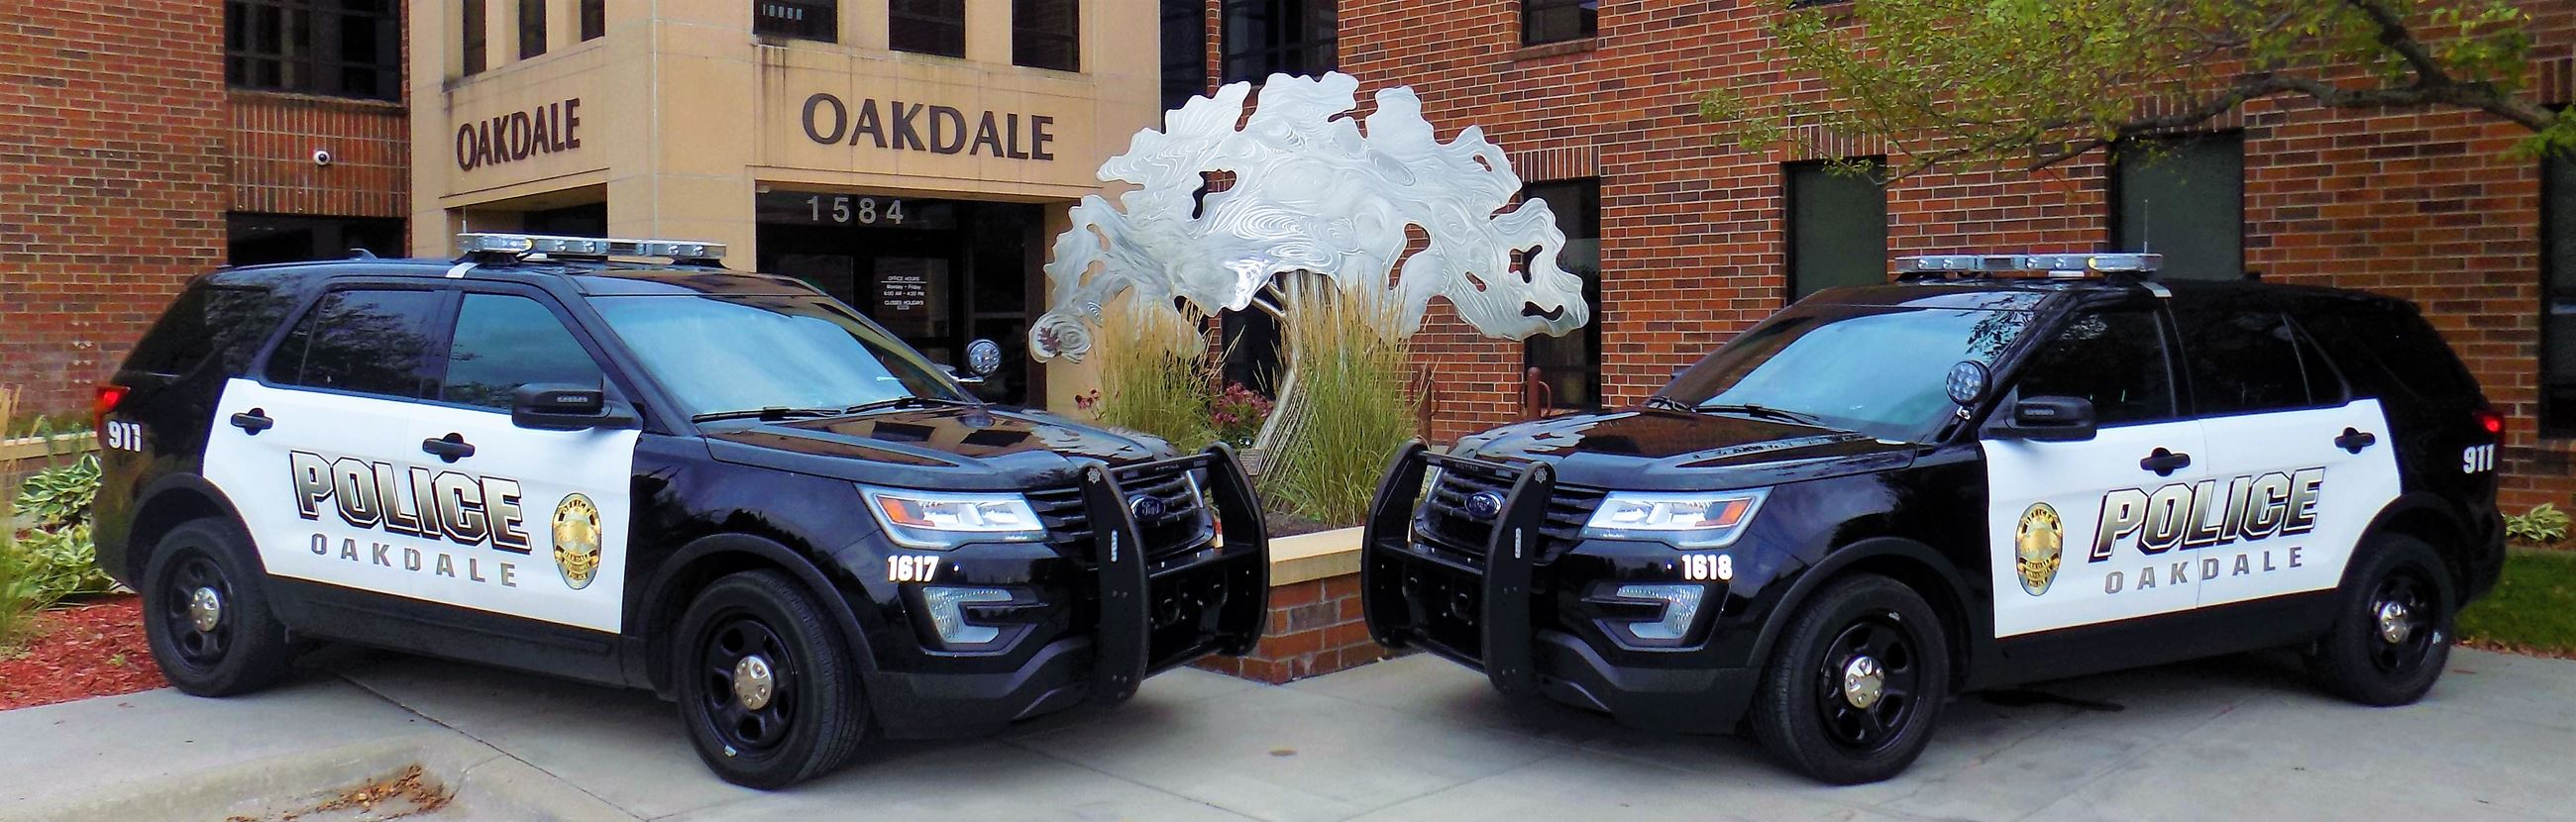 Two Oakdale police cars parked in front of city hall